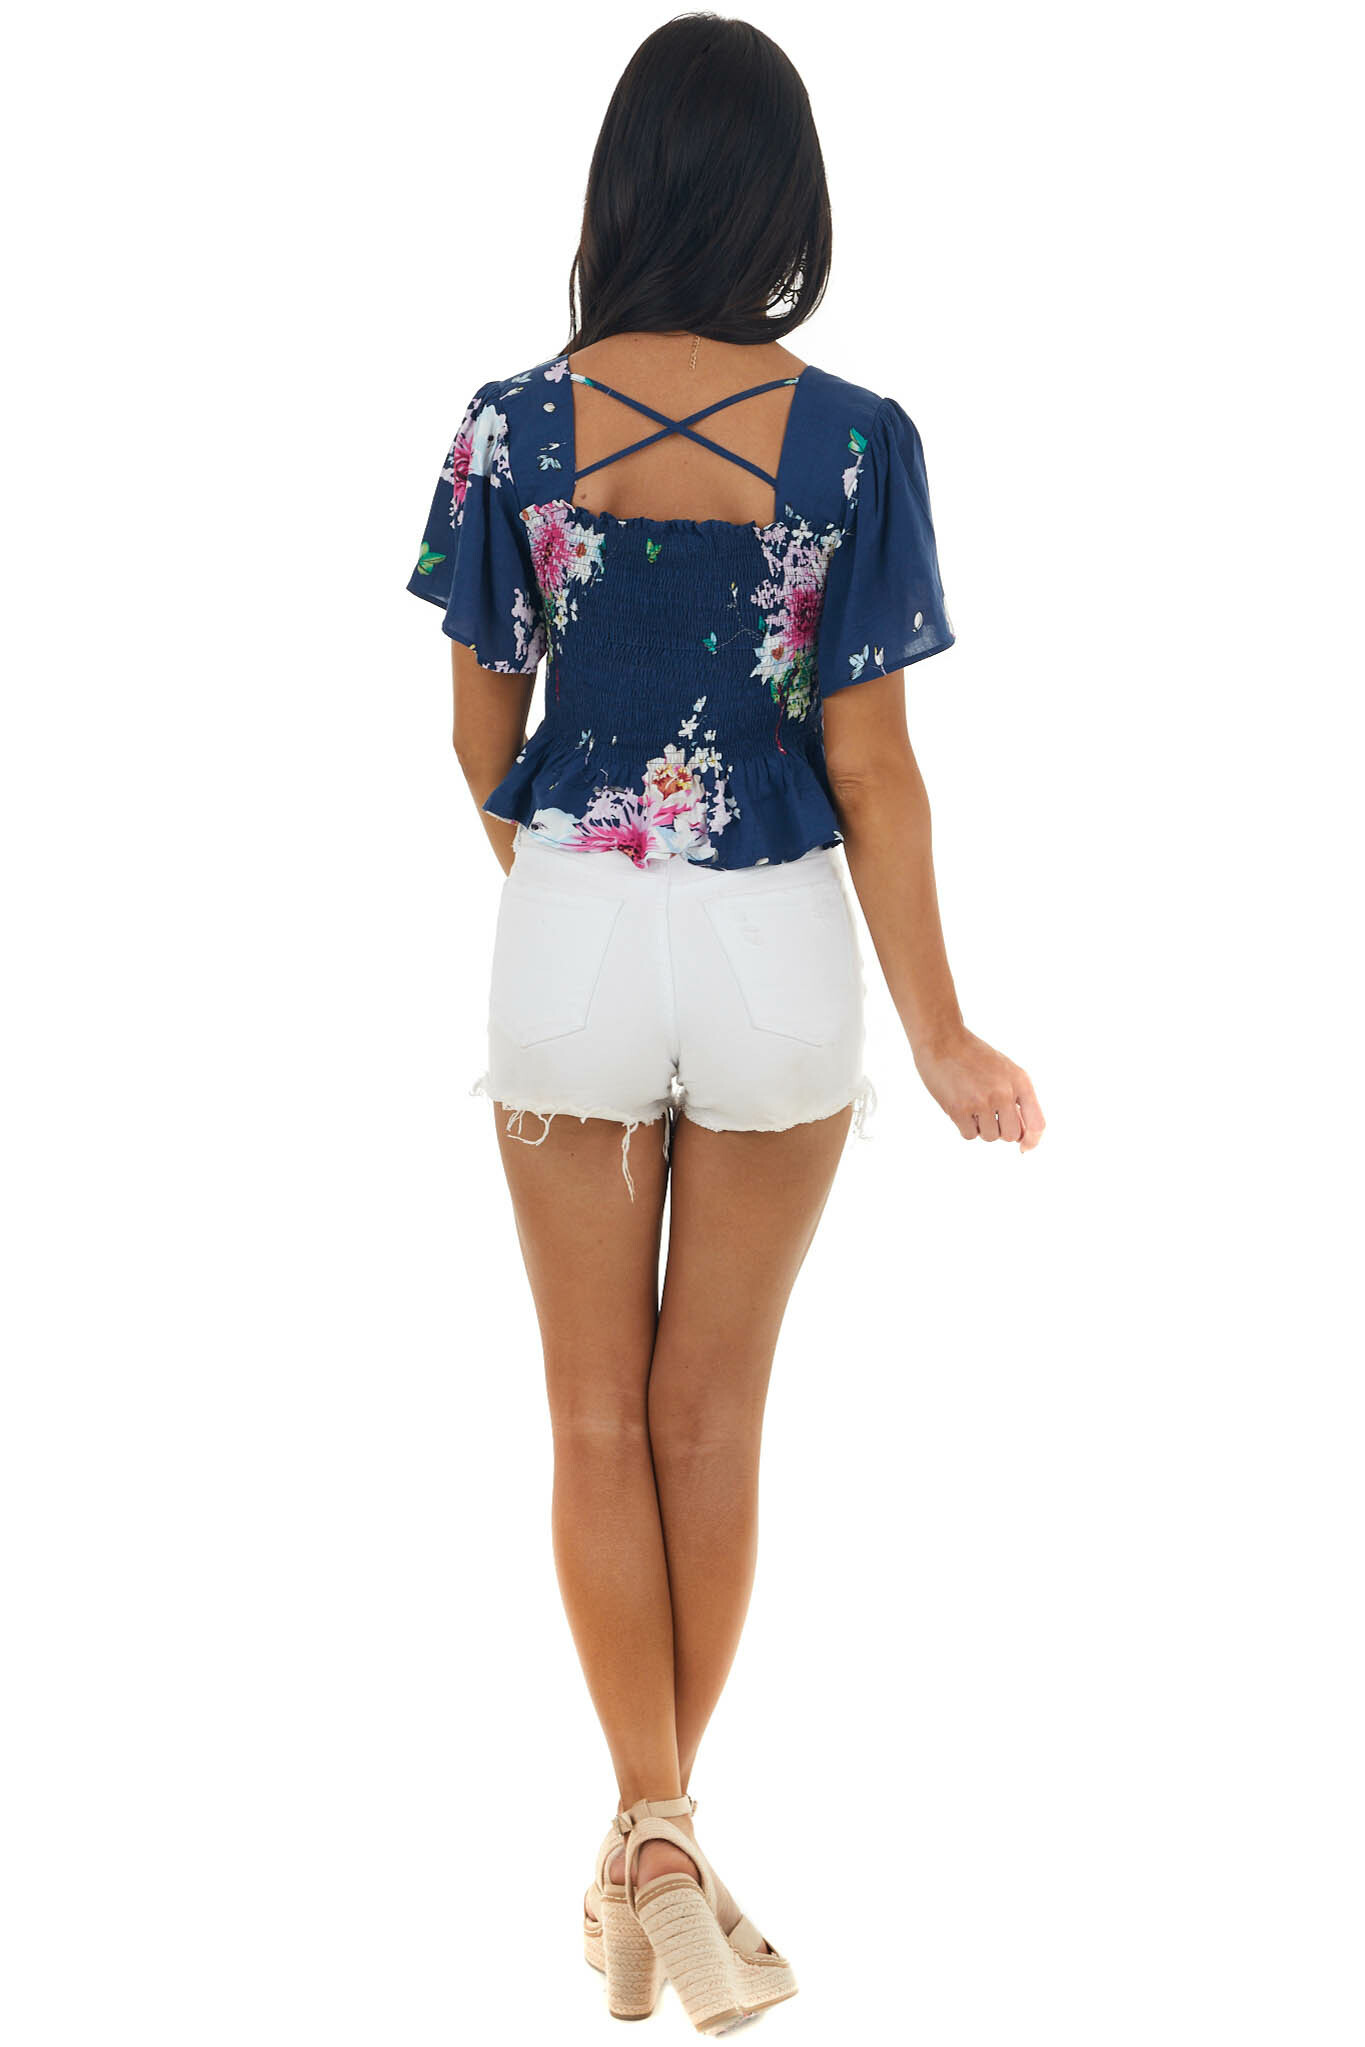 Navy Blue Floral Print Smocked Crop Top with Short Sleeves